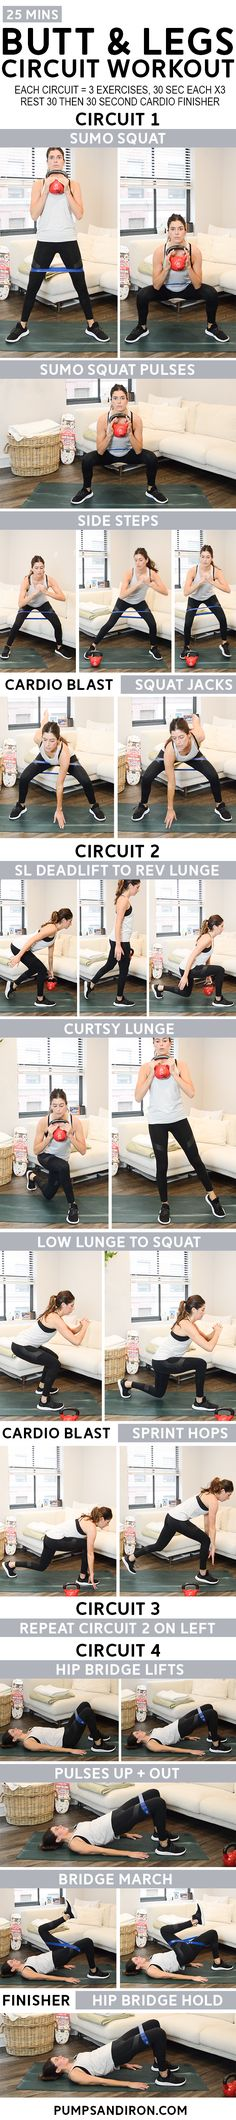 25-Minute Circuit Workout with Cardio Blasts: Butt & Legs